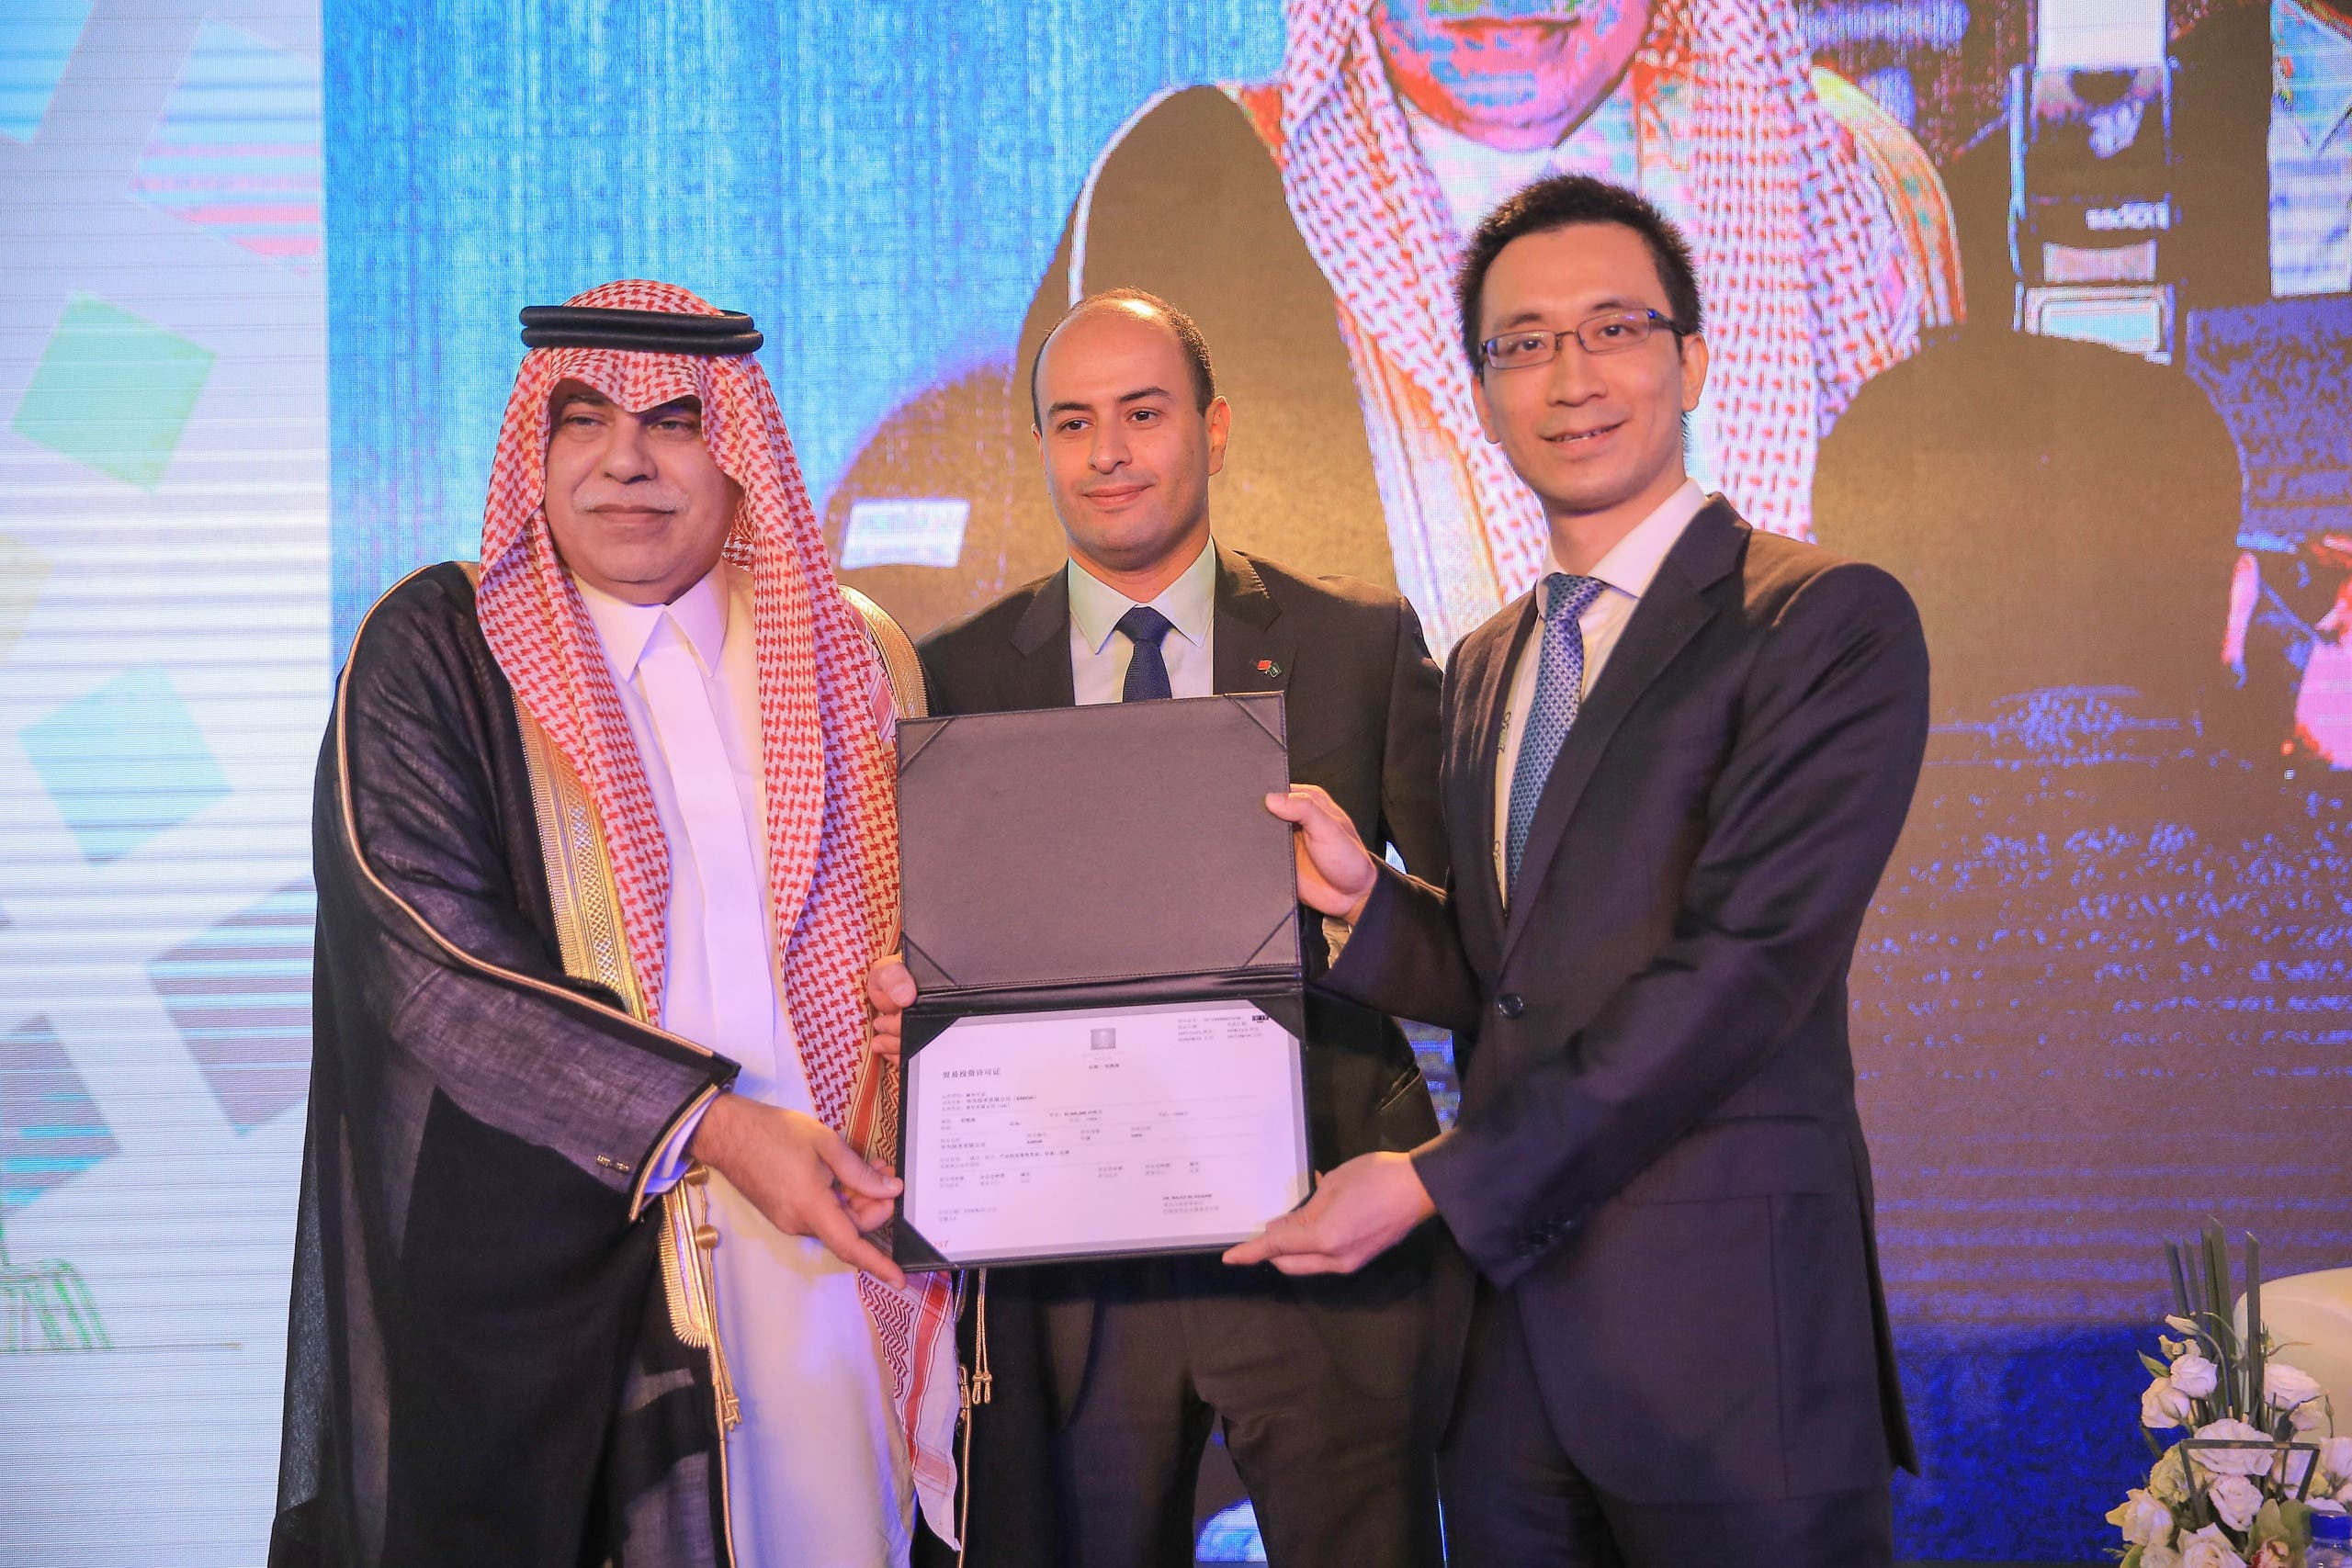 Saudi Arabia's minister of commerce and investment, Dr. Majid Al-Qasabi, handed over the license as part of the activities of a forum organized by Aramco in Beijing to introduce the country's Vision 2030. (Photo courtesy: Huawei)